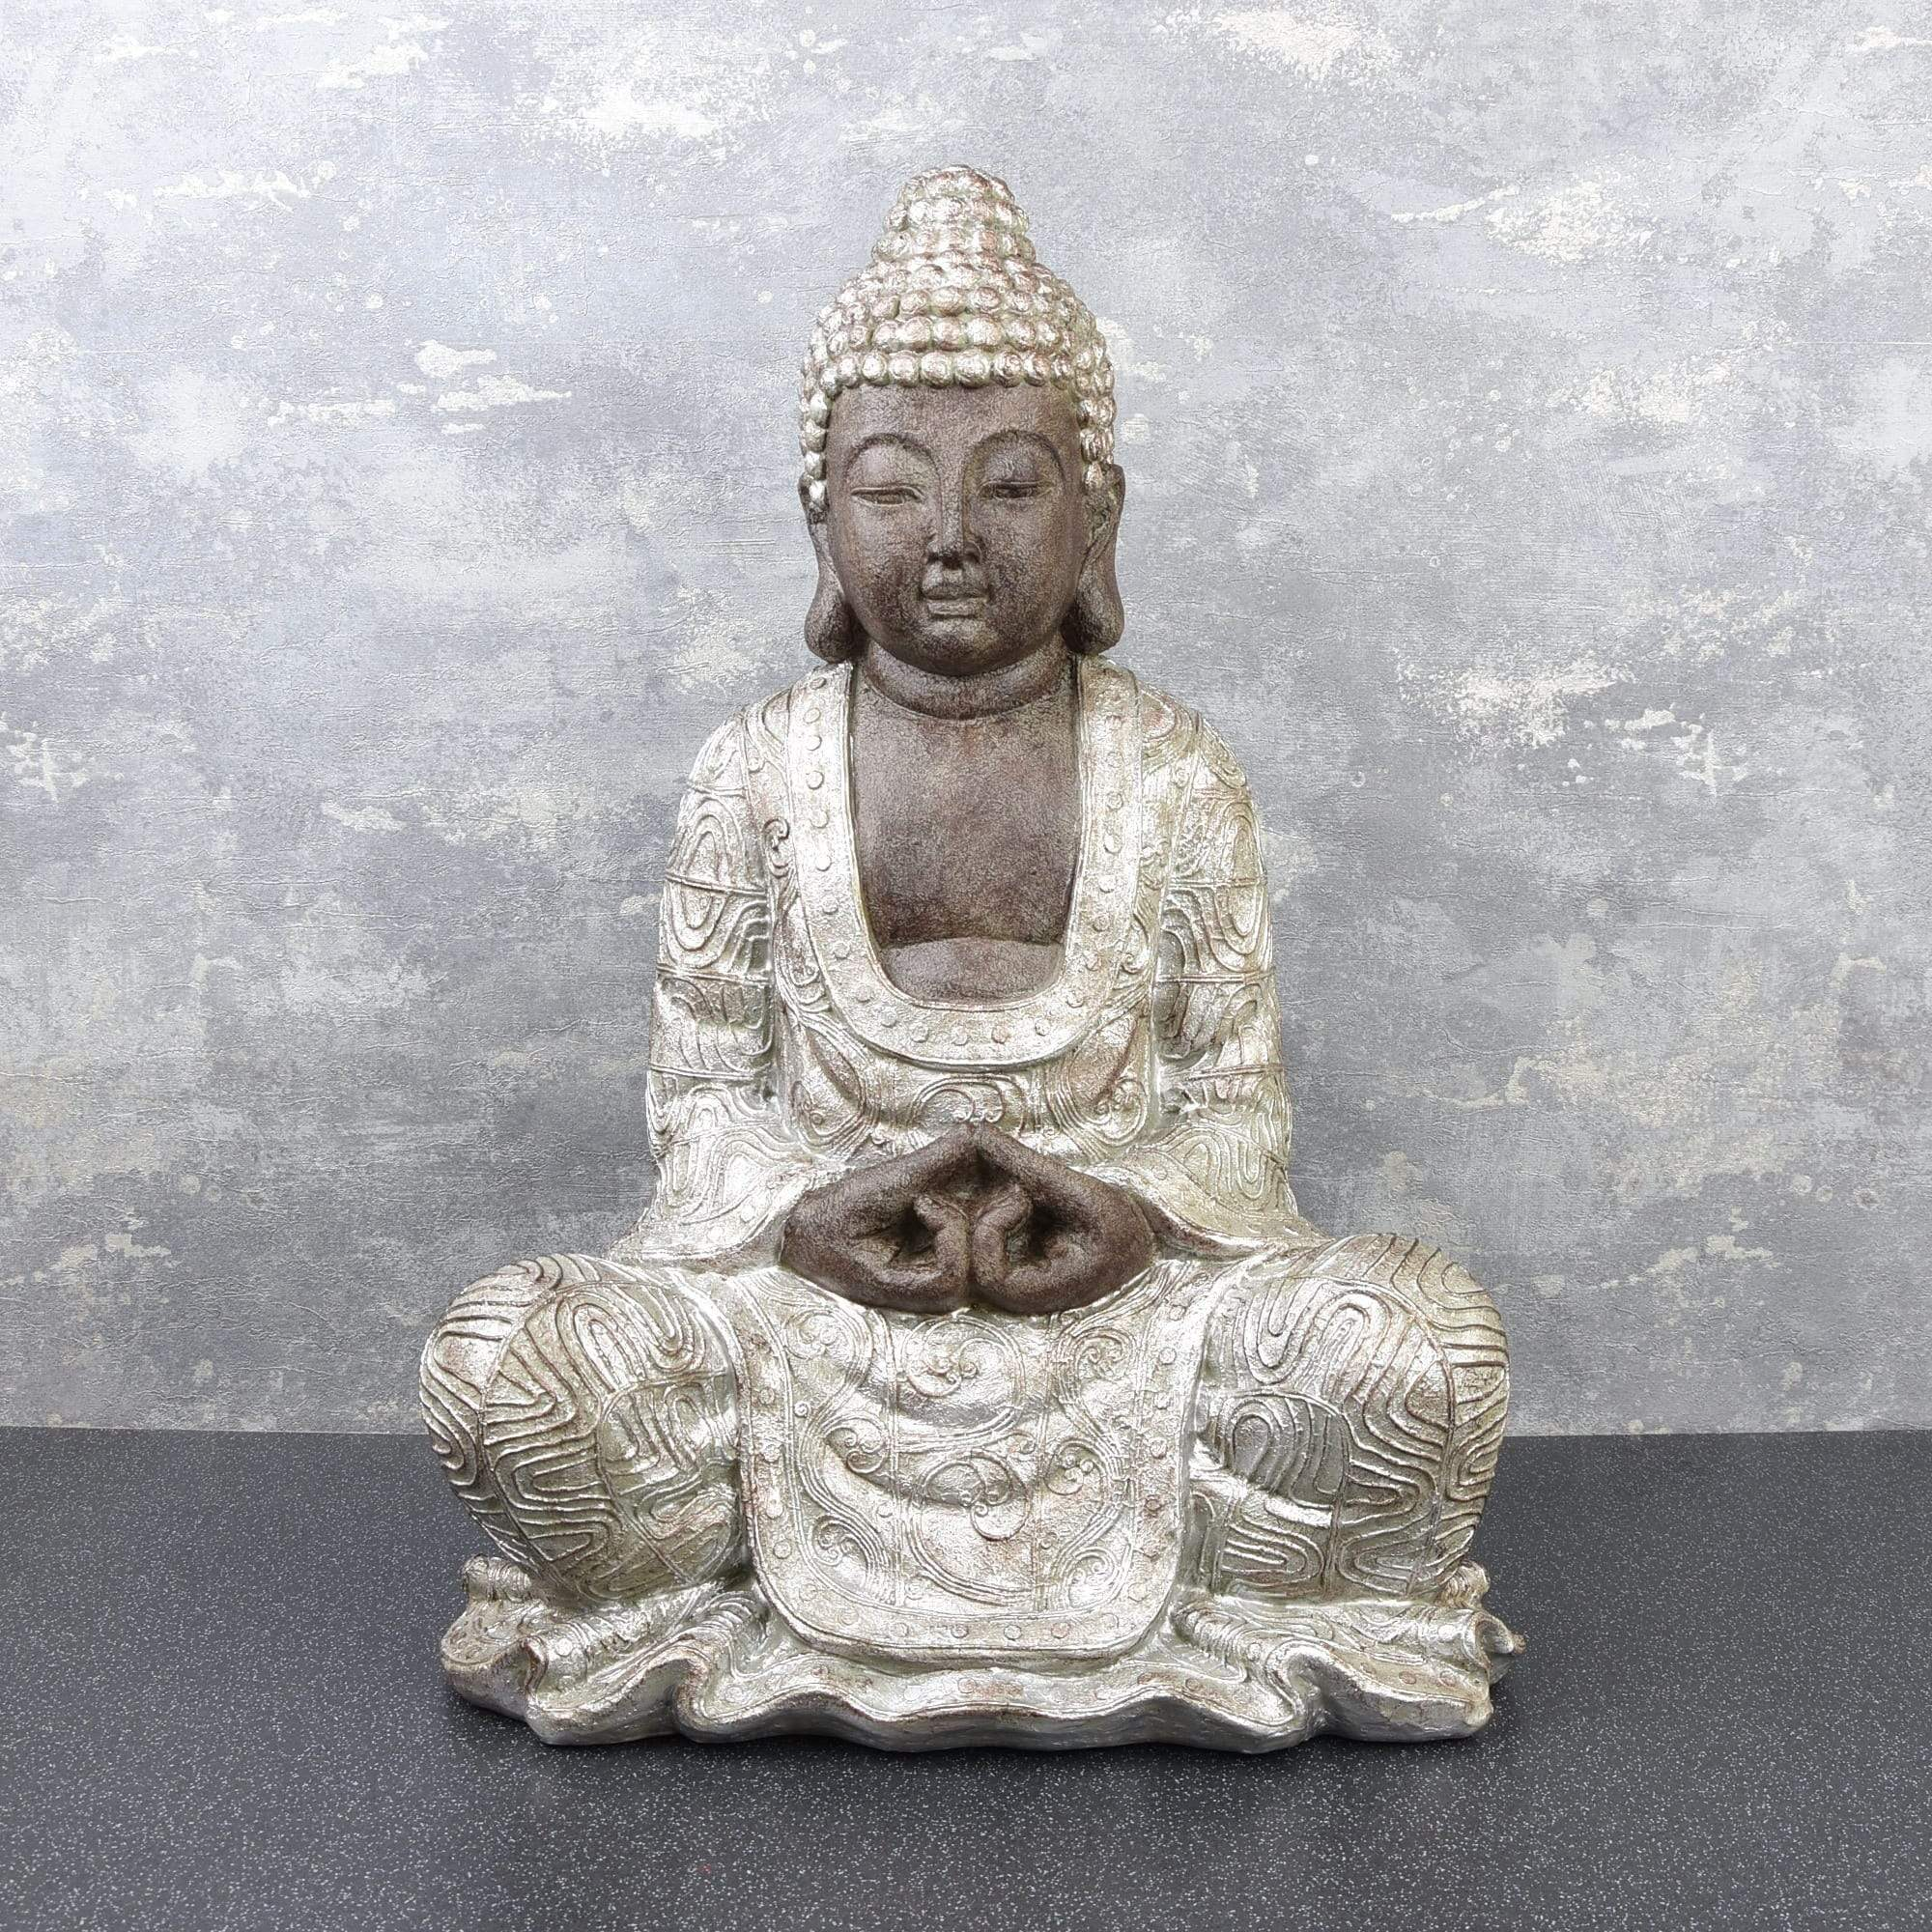 Candlelight Home Figures Large Sitting Buddha Ornament Black and Silver 47.5cm 1PK